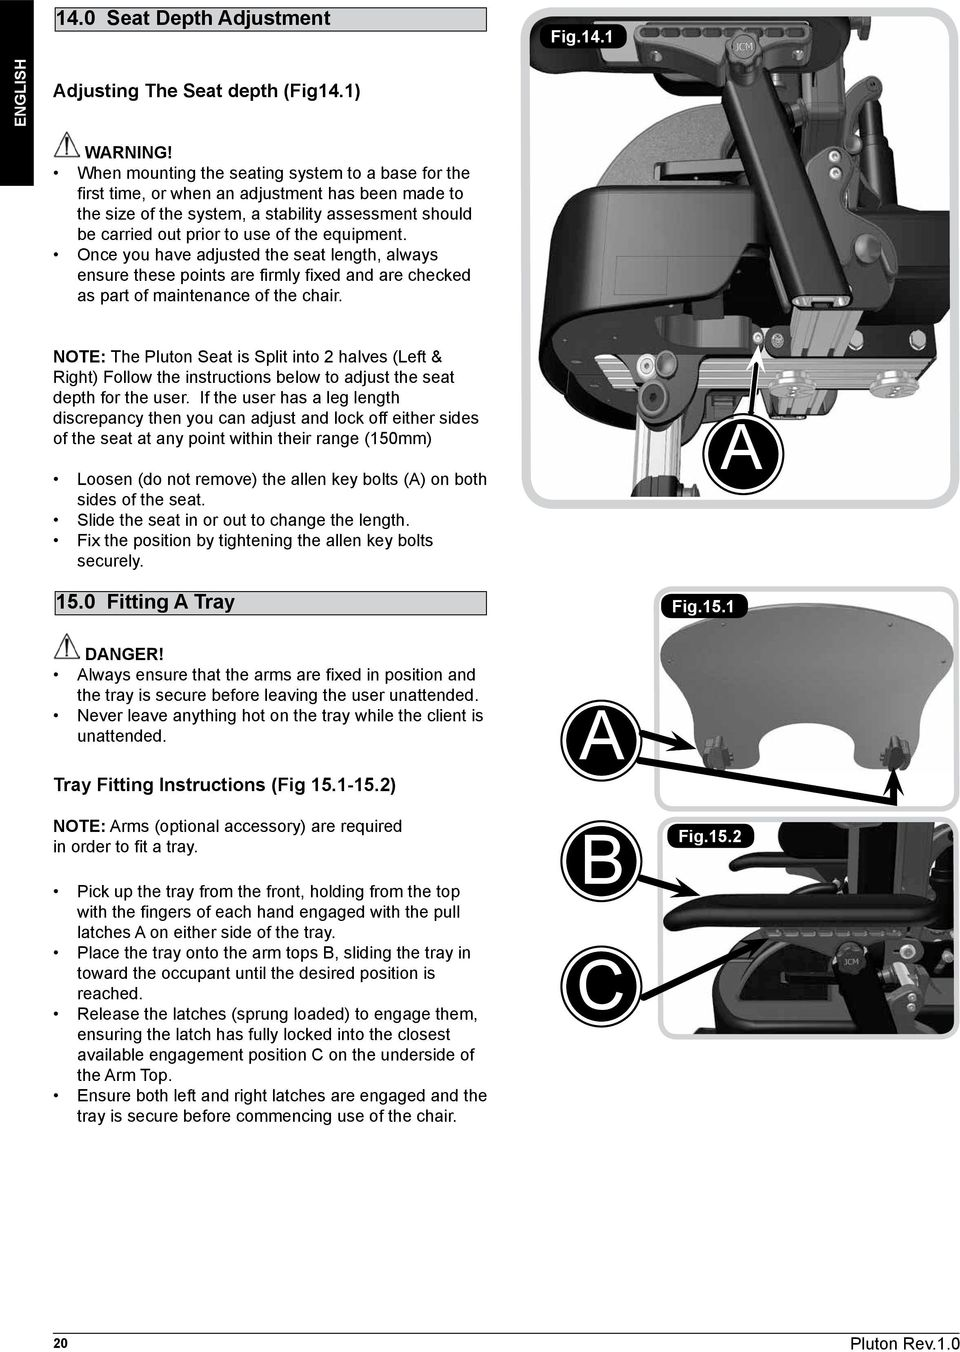 equipment. Once you have adjusted the seat length, always ensure these points are firmly fixed and are checked as part of maintenance of the chair.